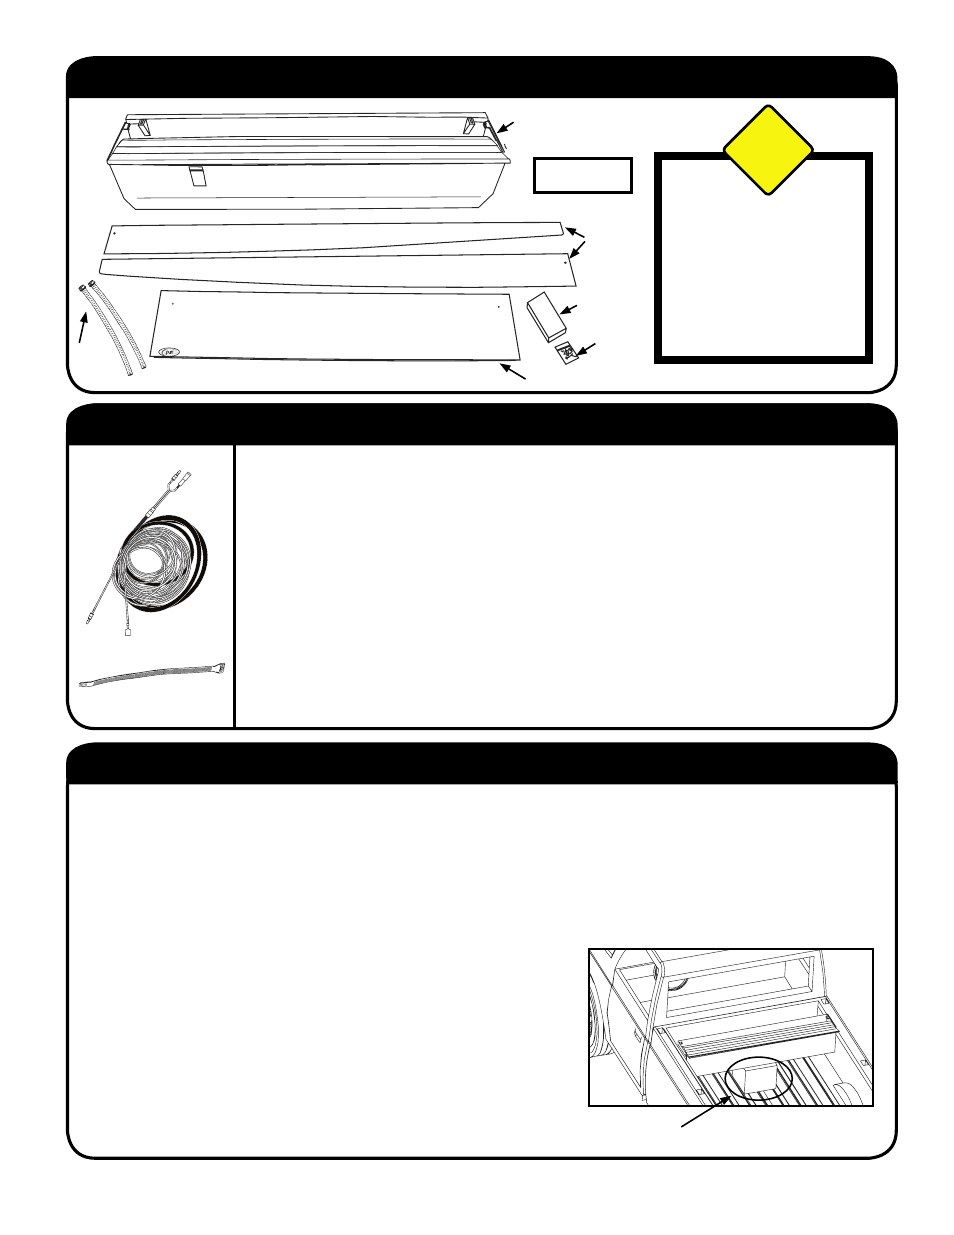 Step 3: place canister in truck bed, Step 2: install wiring harness,